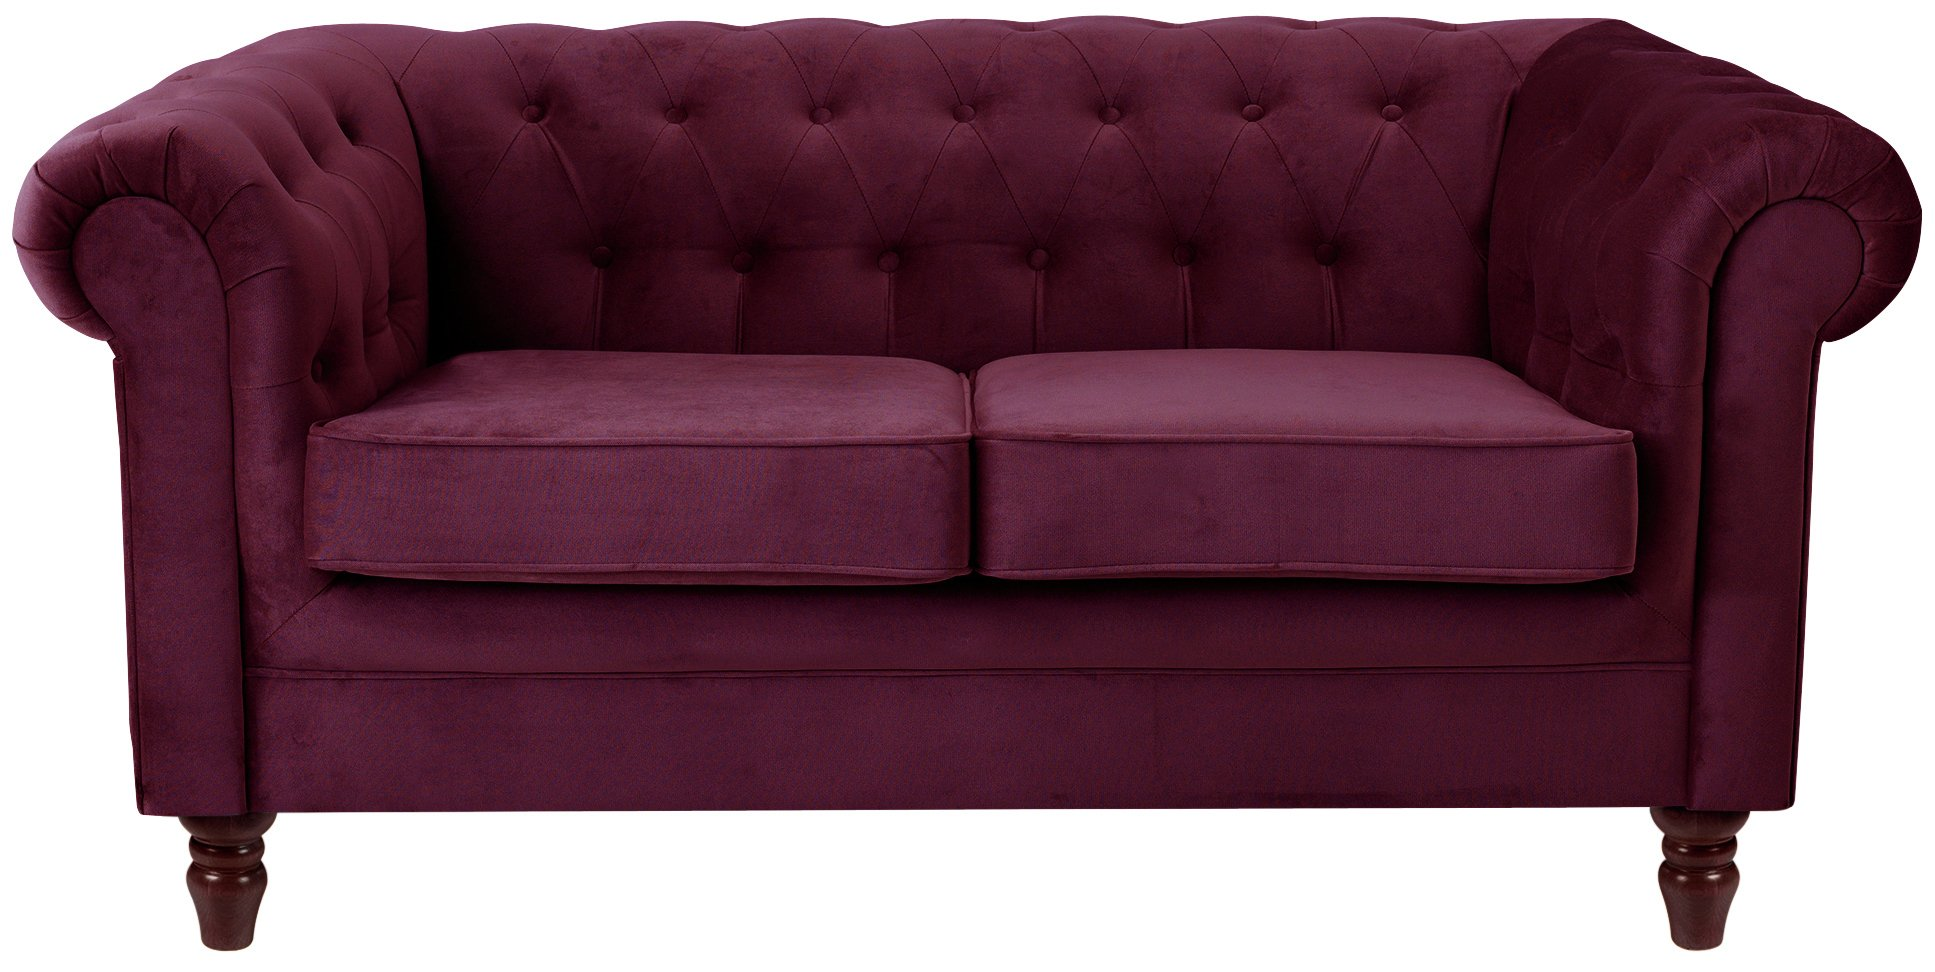 Black Friday Sofa Deals Uk Refil Sofa